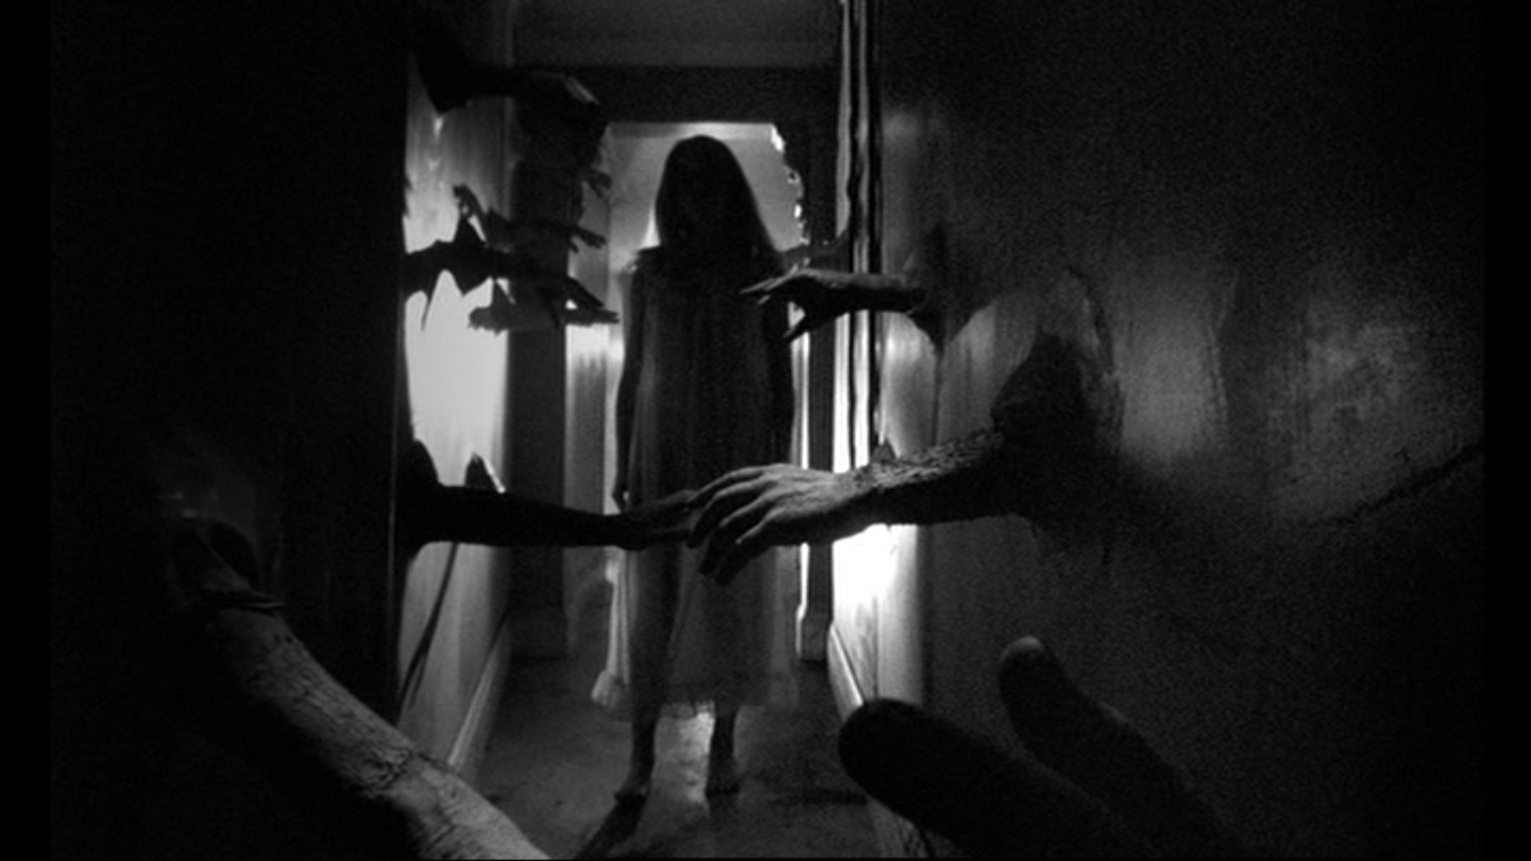 https://folkhorrorrevival.files.wordpress.com/2021/01/028ea-repulsion7.jpg